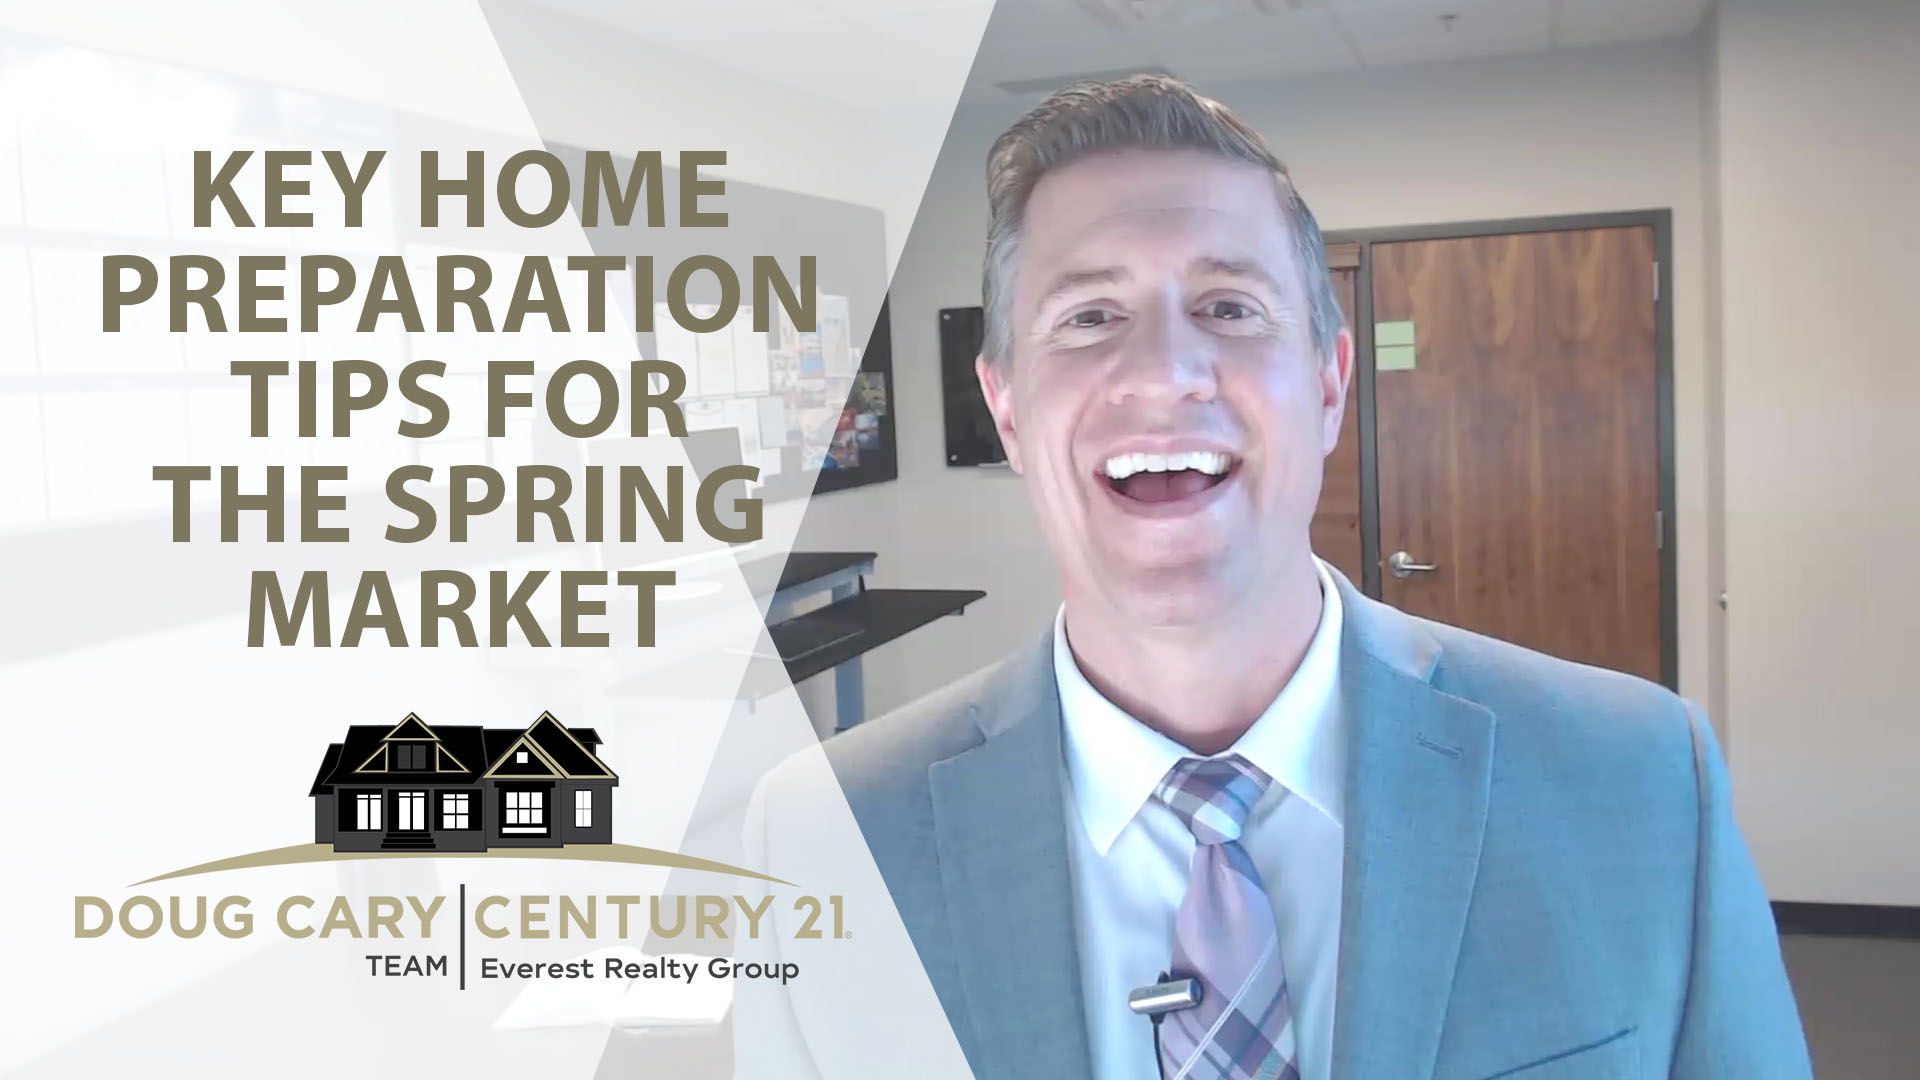 6 Tips to Make Your Home Dazzle on the Spring Market